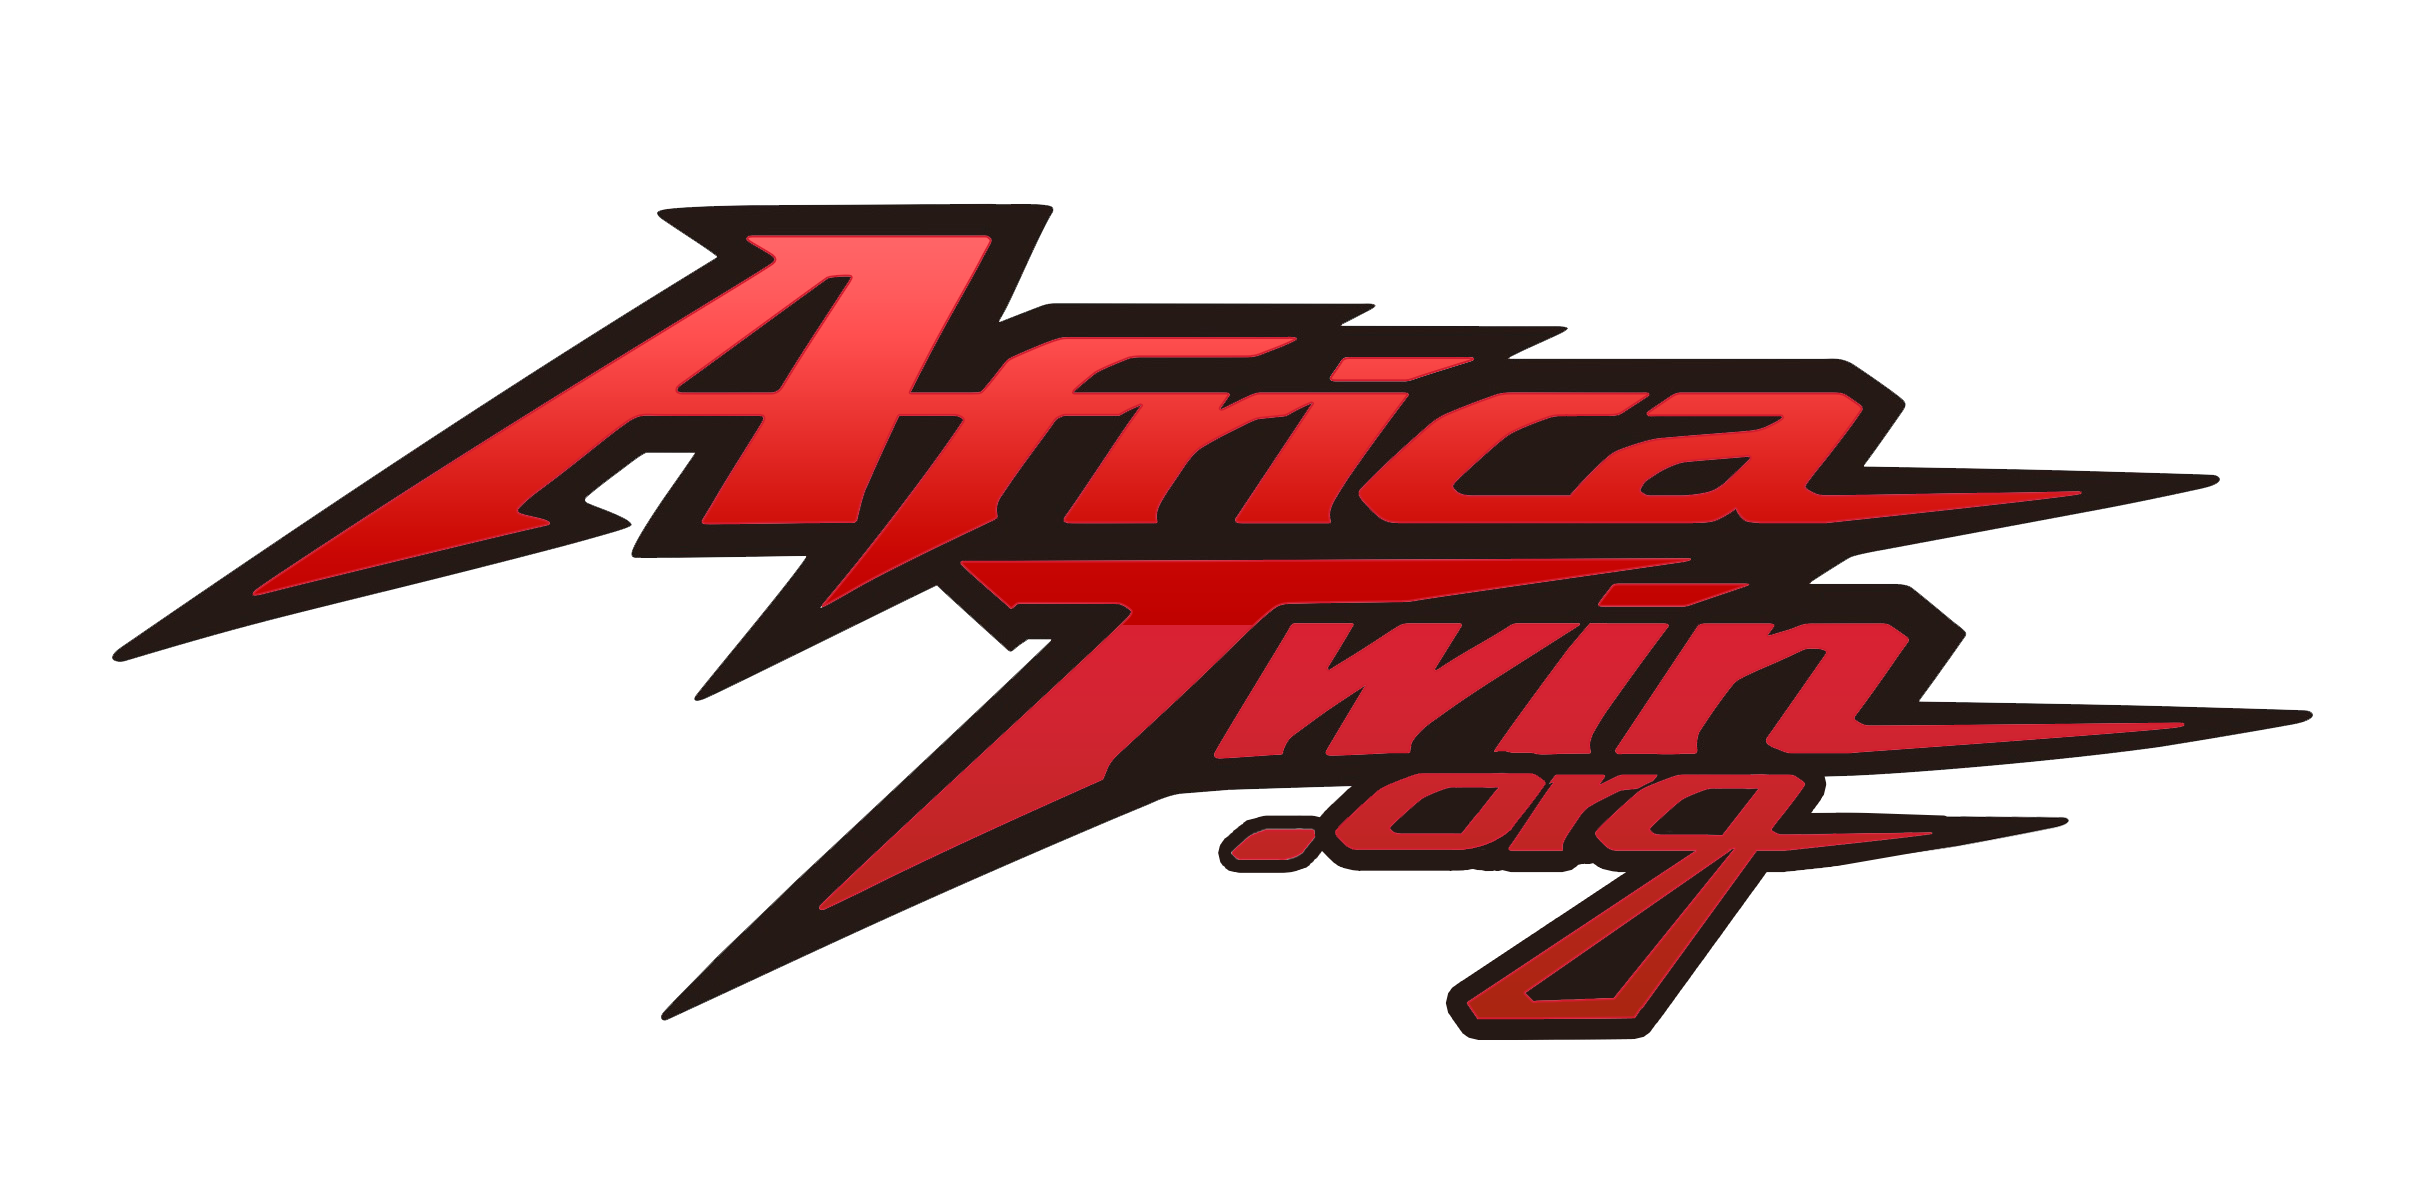 Africatwin.org